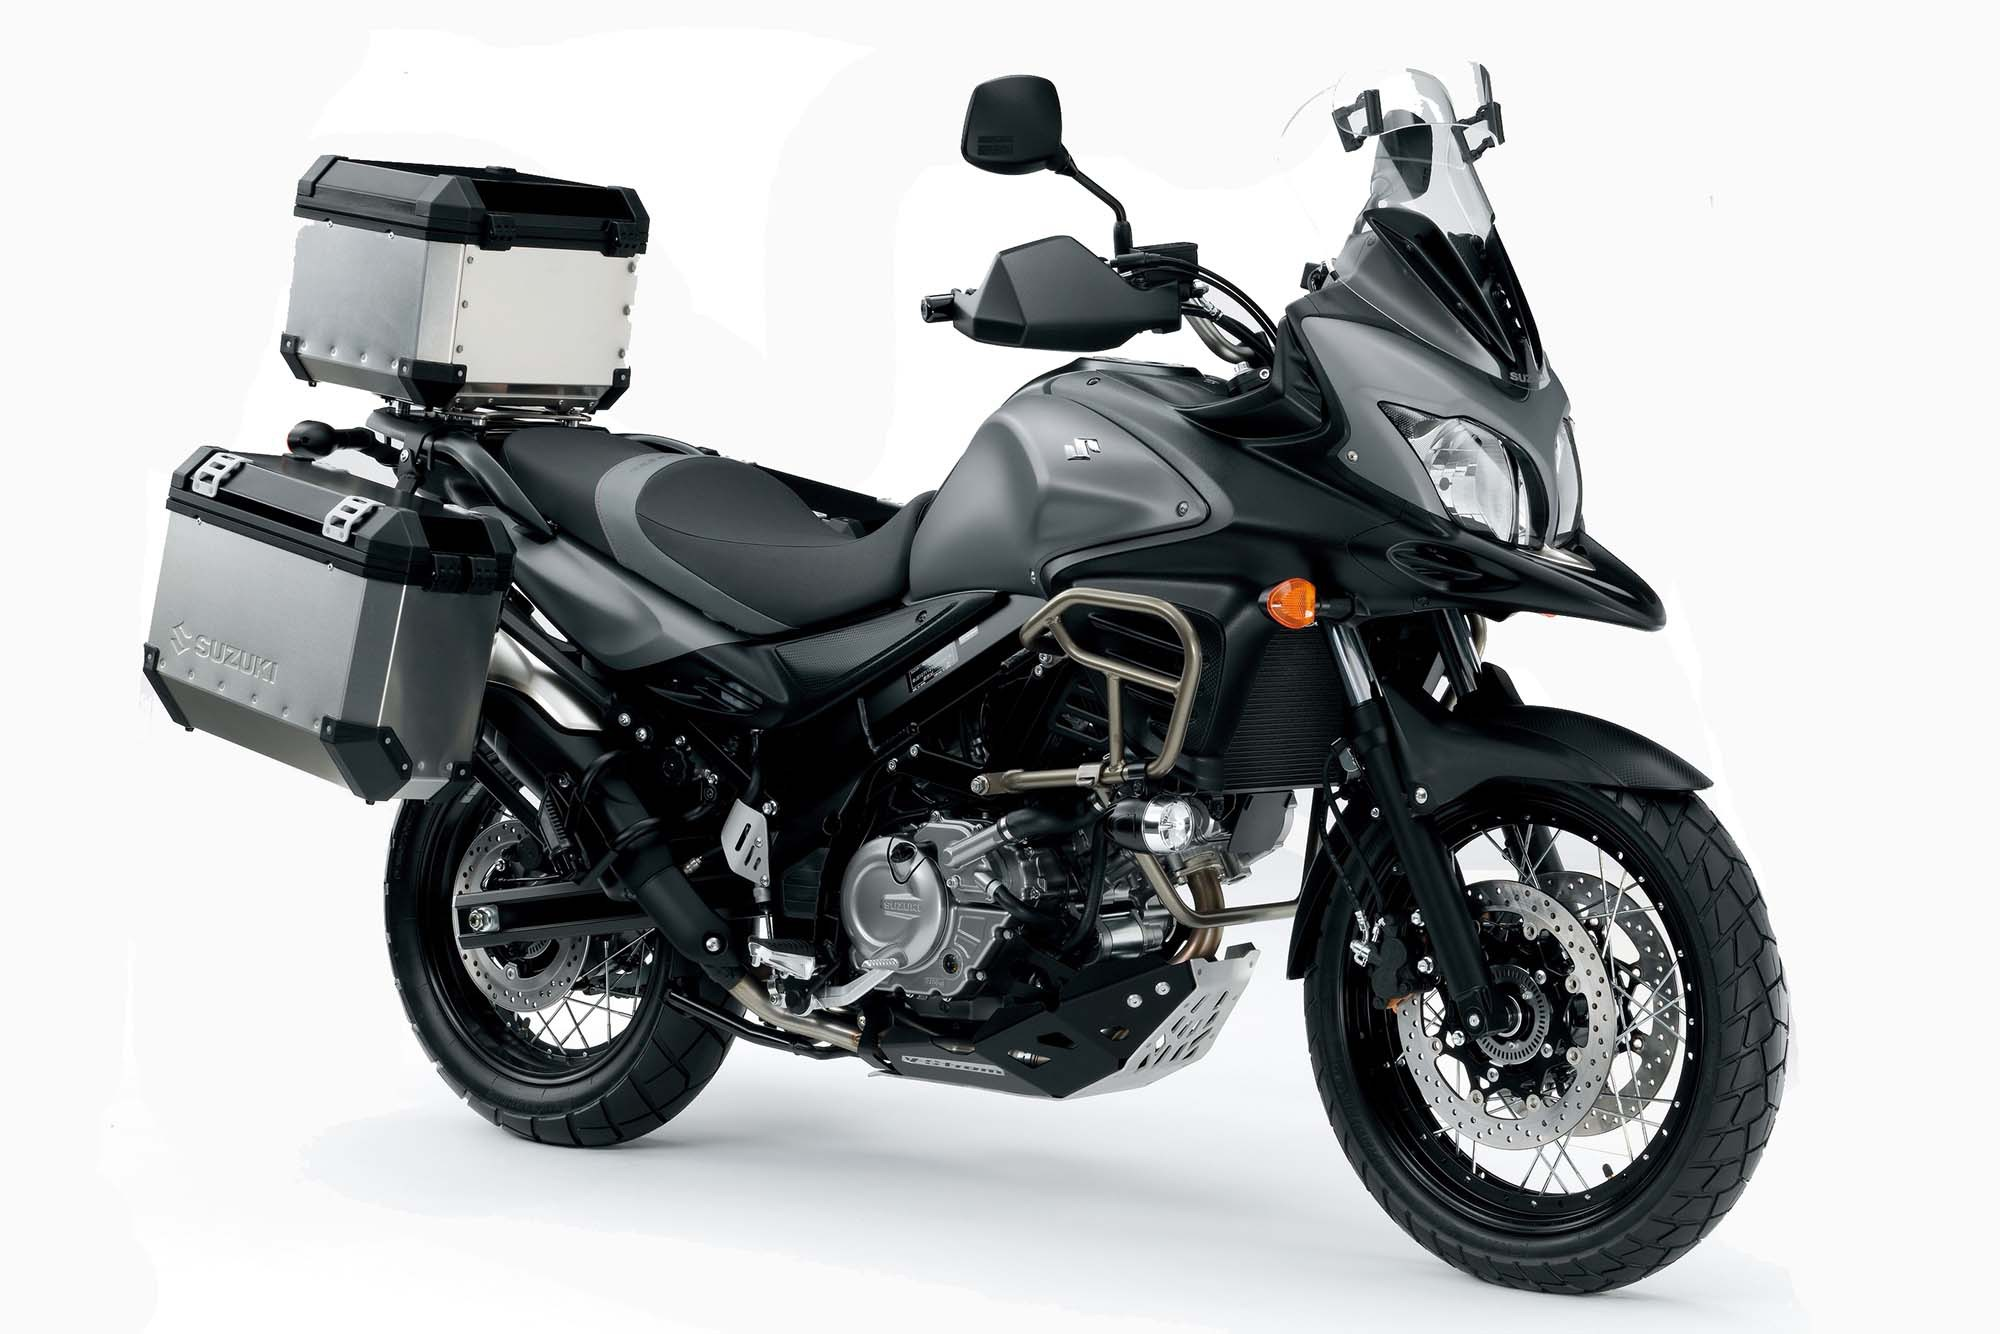 2014 suzuki v strom 1000 abs adventure moto zombdrive com. Black Bedroom Furniture Sets. Home Design Ideas